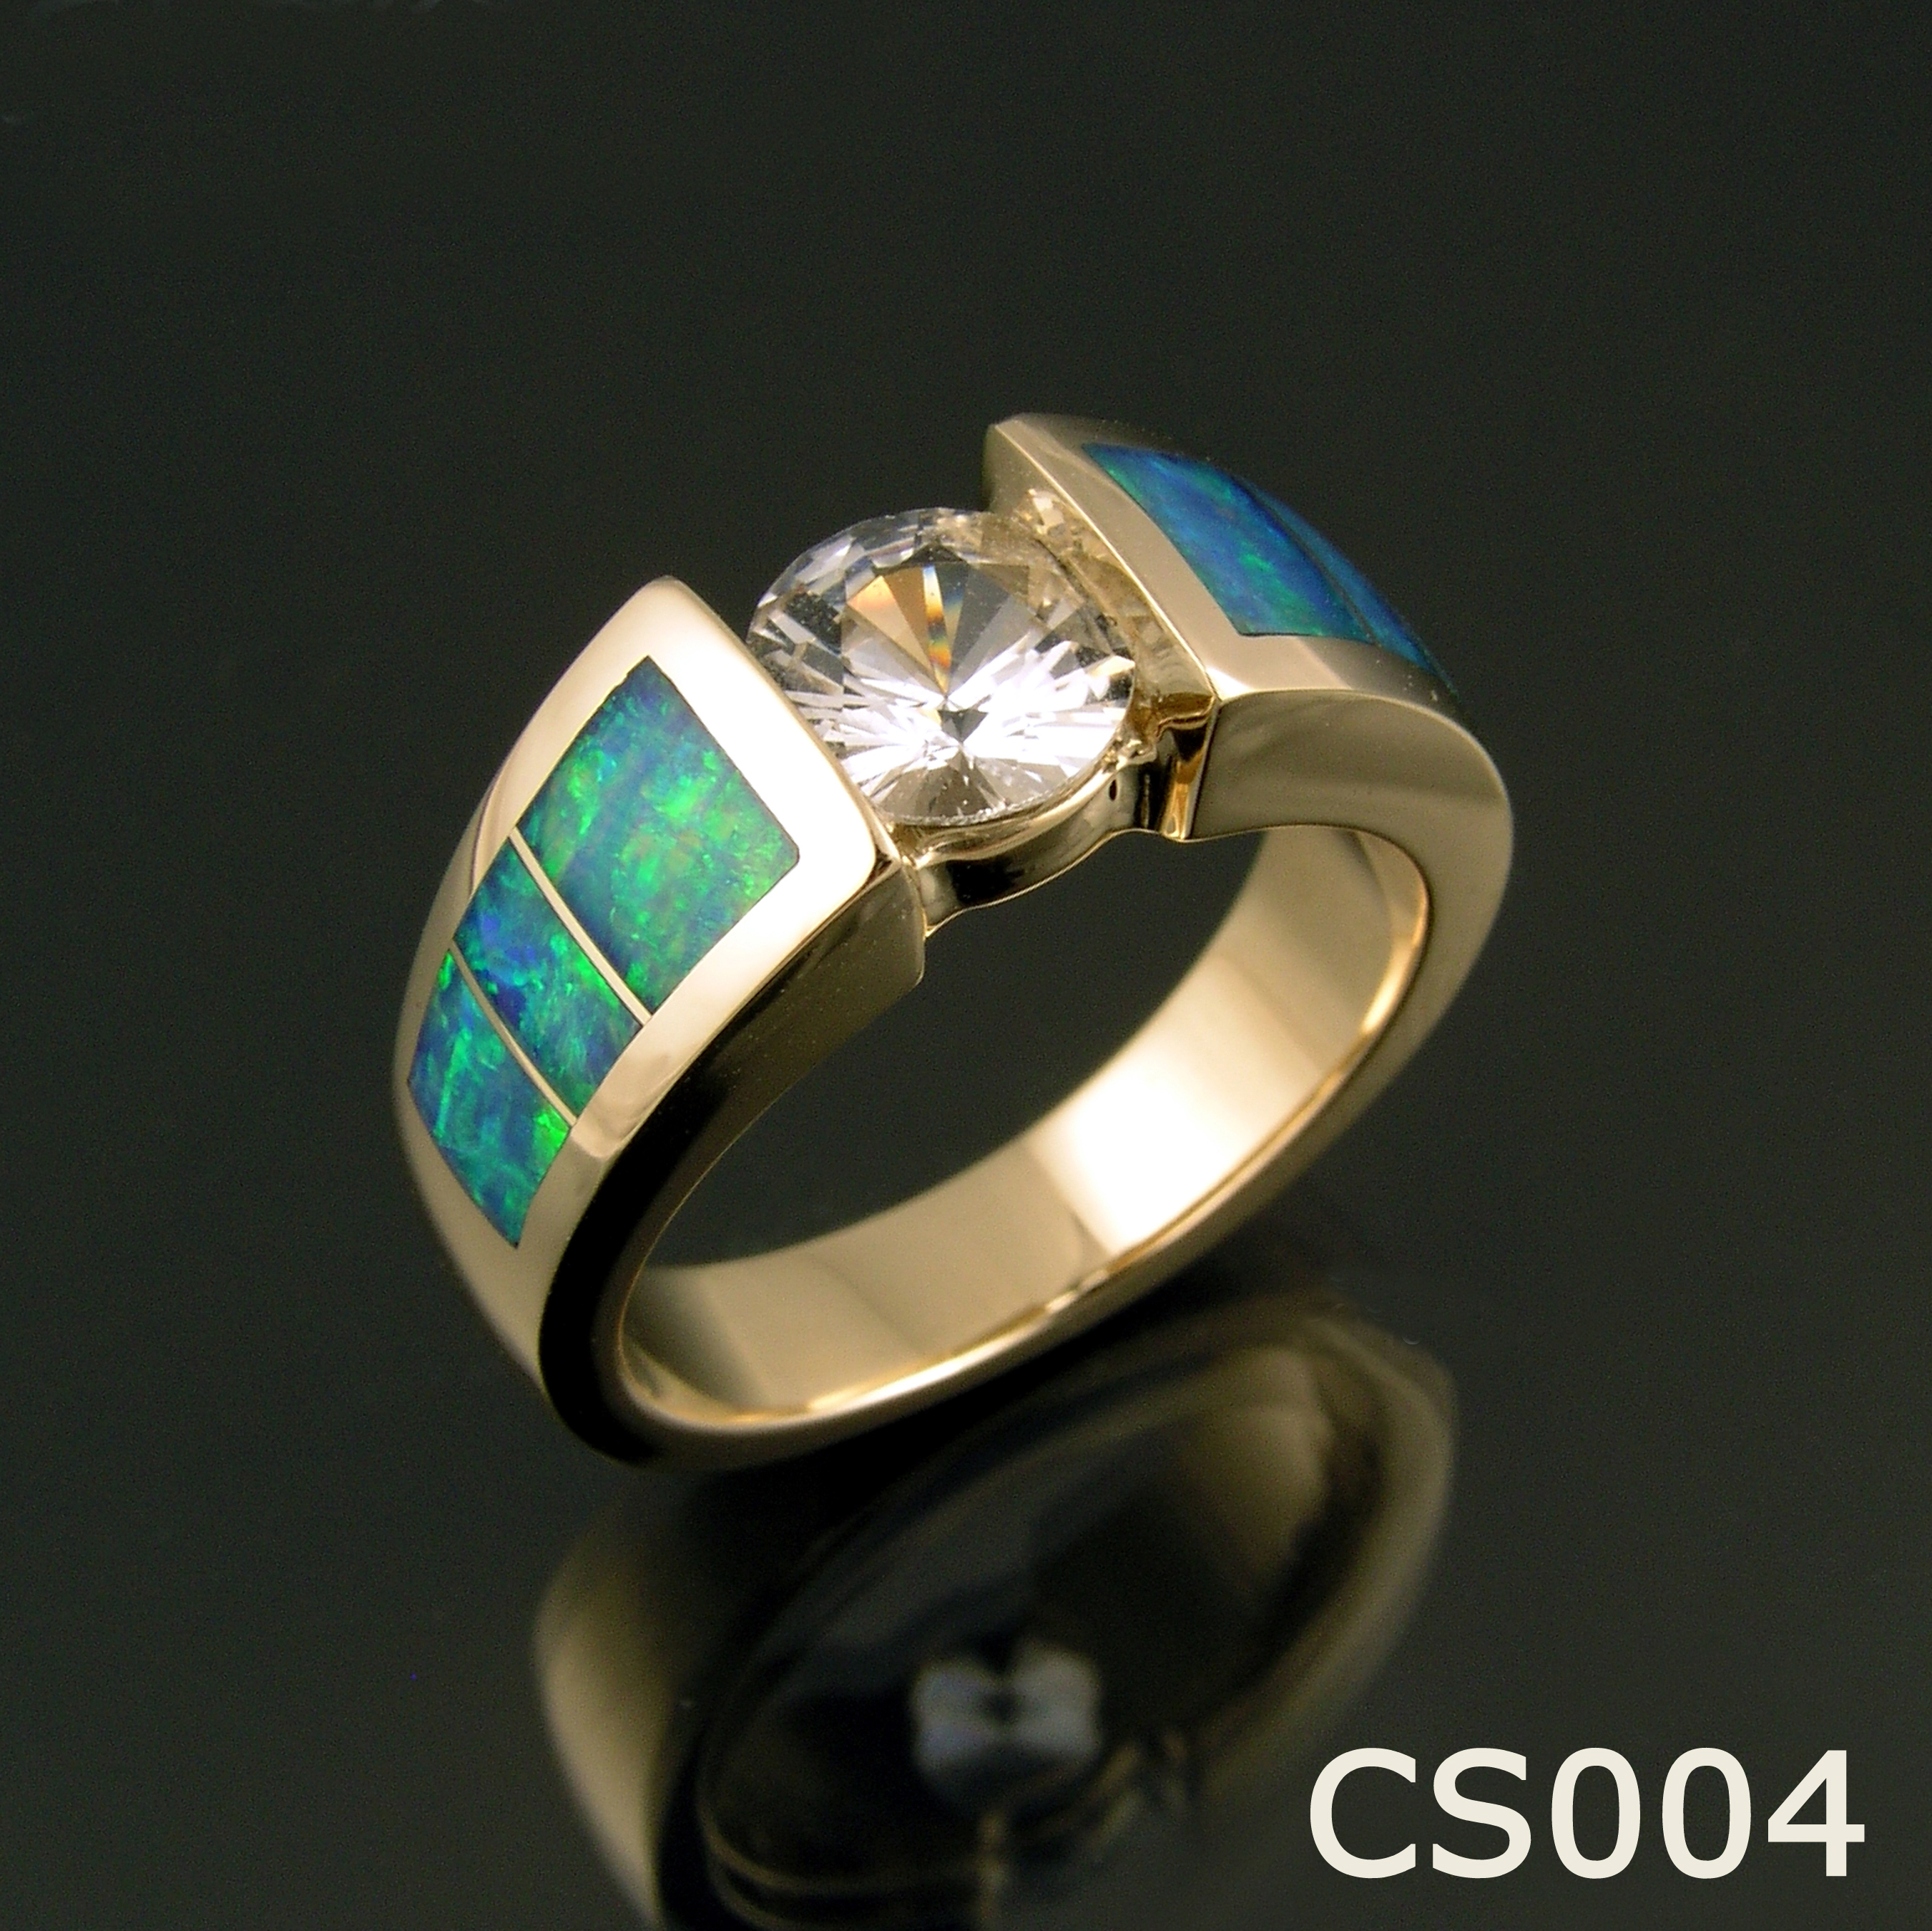 Opal inlay ring with white sapphire in 14k gold by Hileman